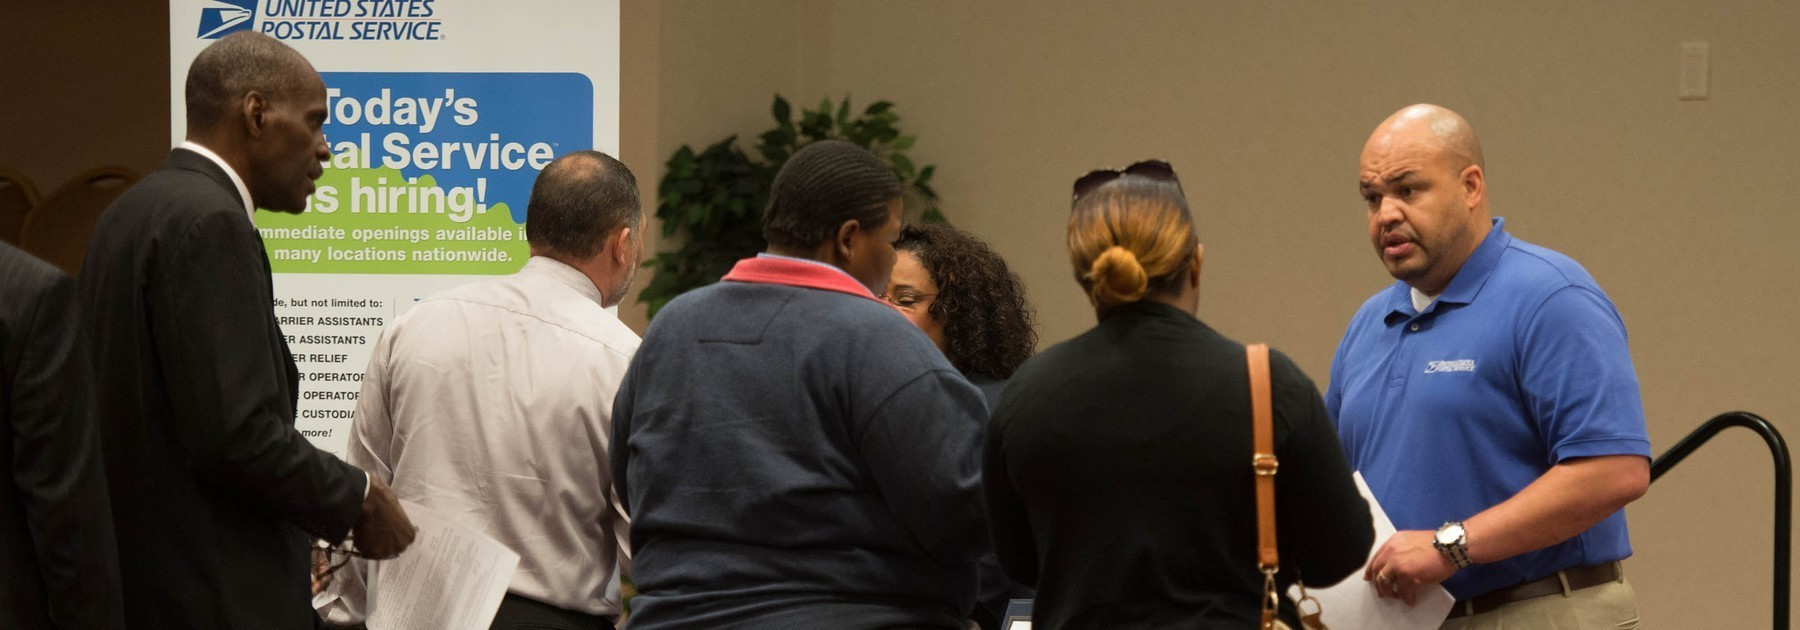 Jobless claims drop 14,000 to 298,000